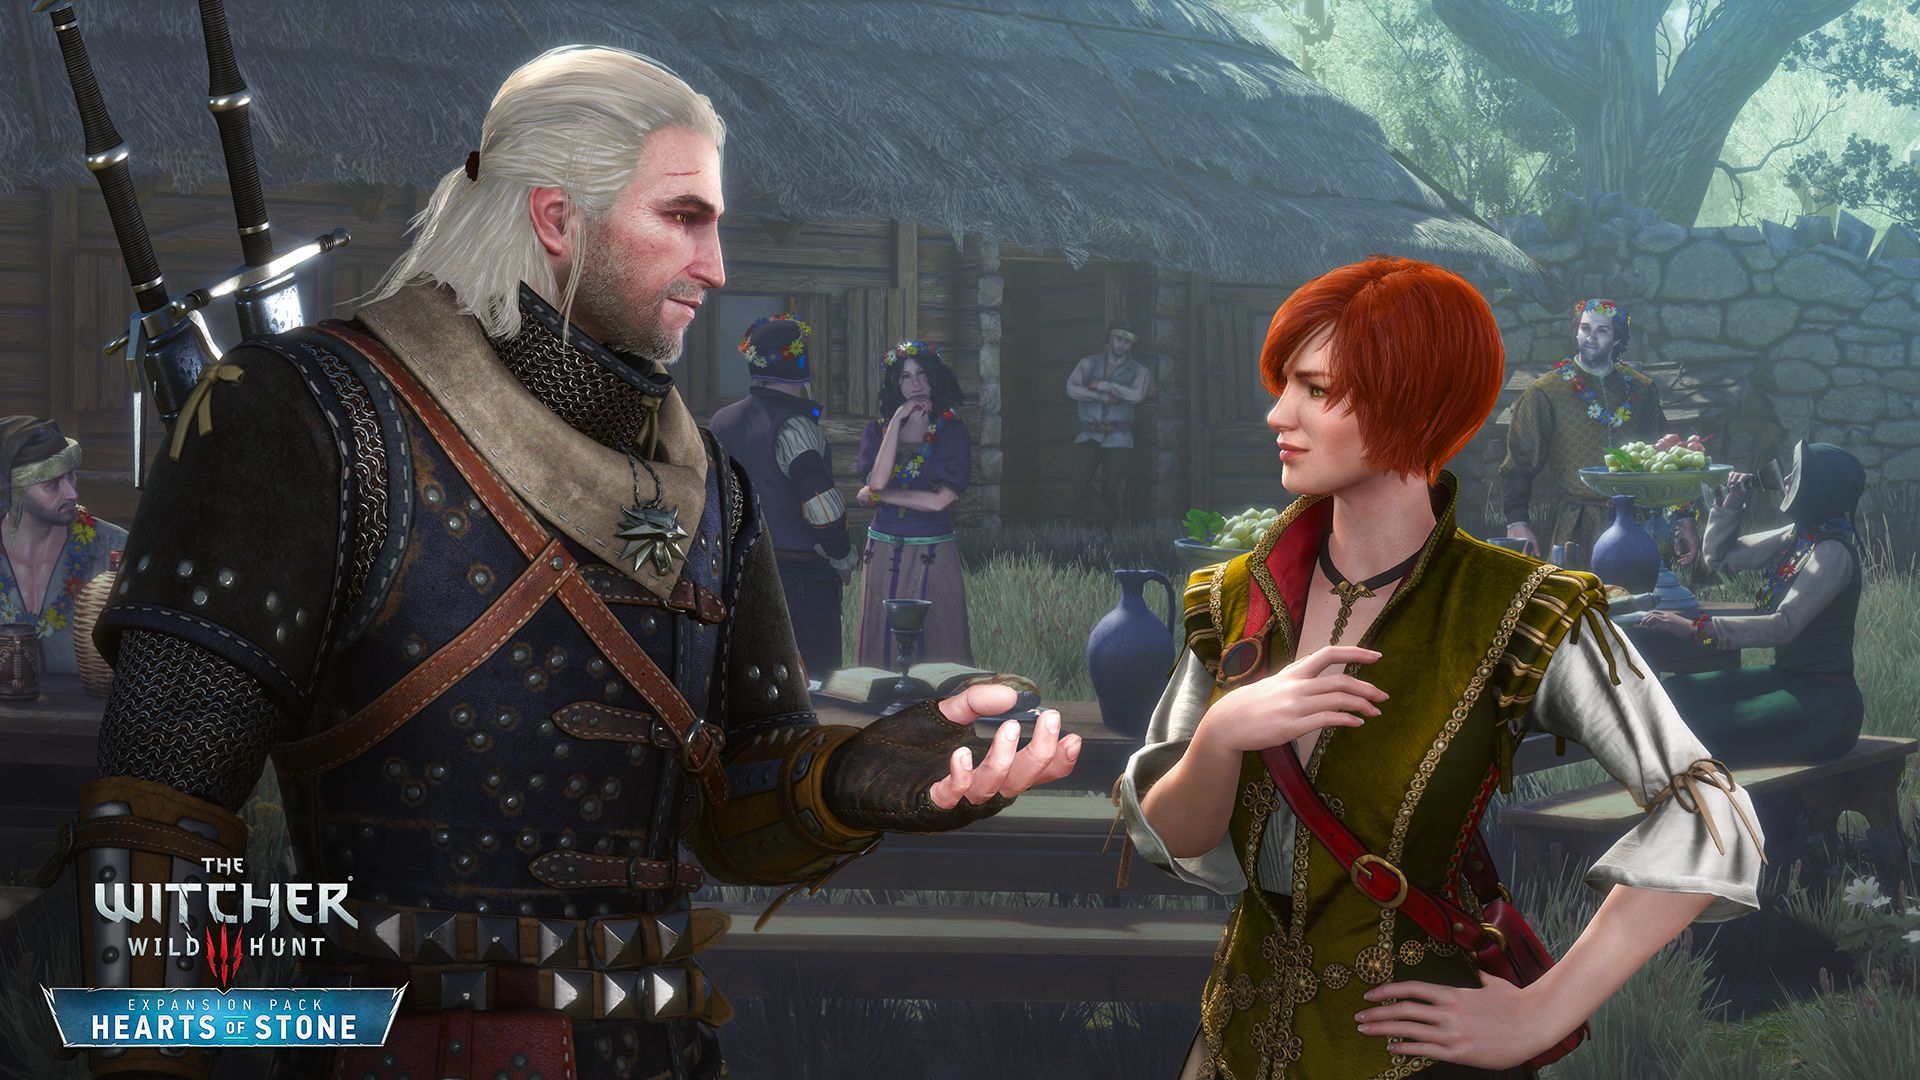 The Witcher 3: Hearts Of Stone - more monsters and more romance